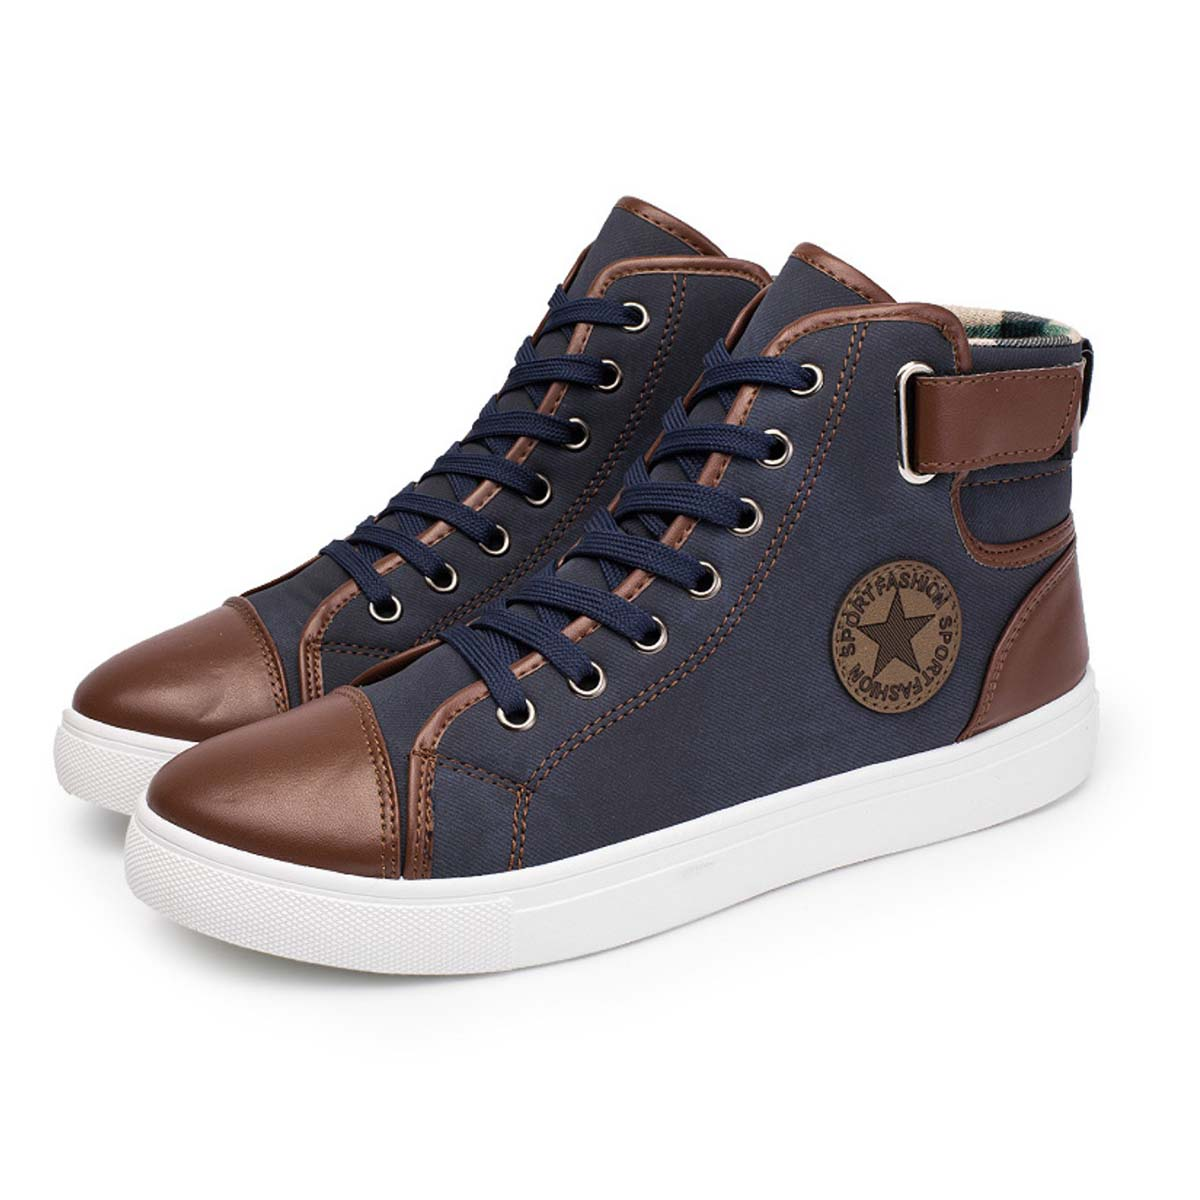 Men s Casual Shoes Summer Breathable Canvas High Top Shoes Male Fashion  Winter Warm Lace-up Comfort Non-slip Flats Footwear ab0a8644a